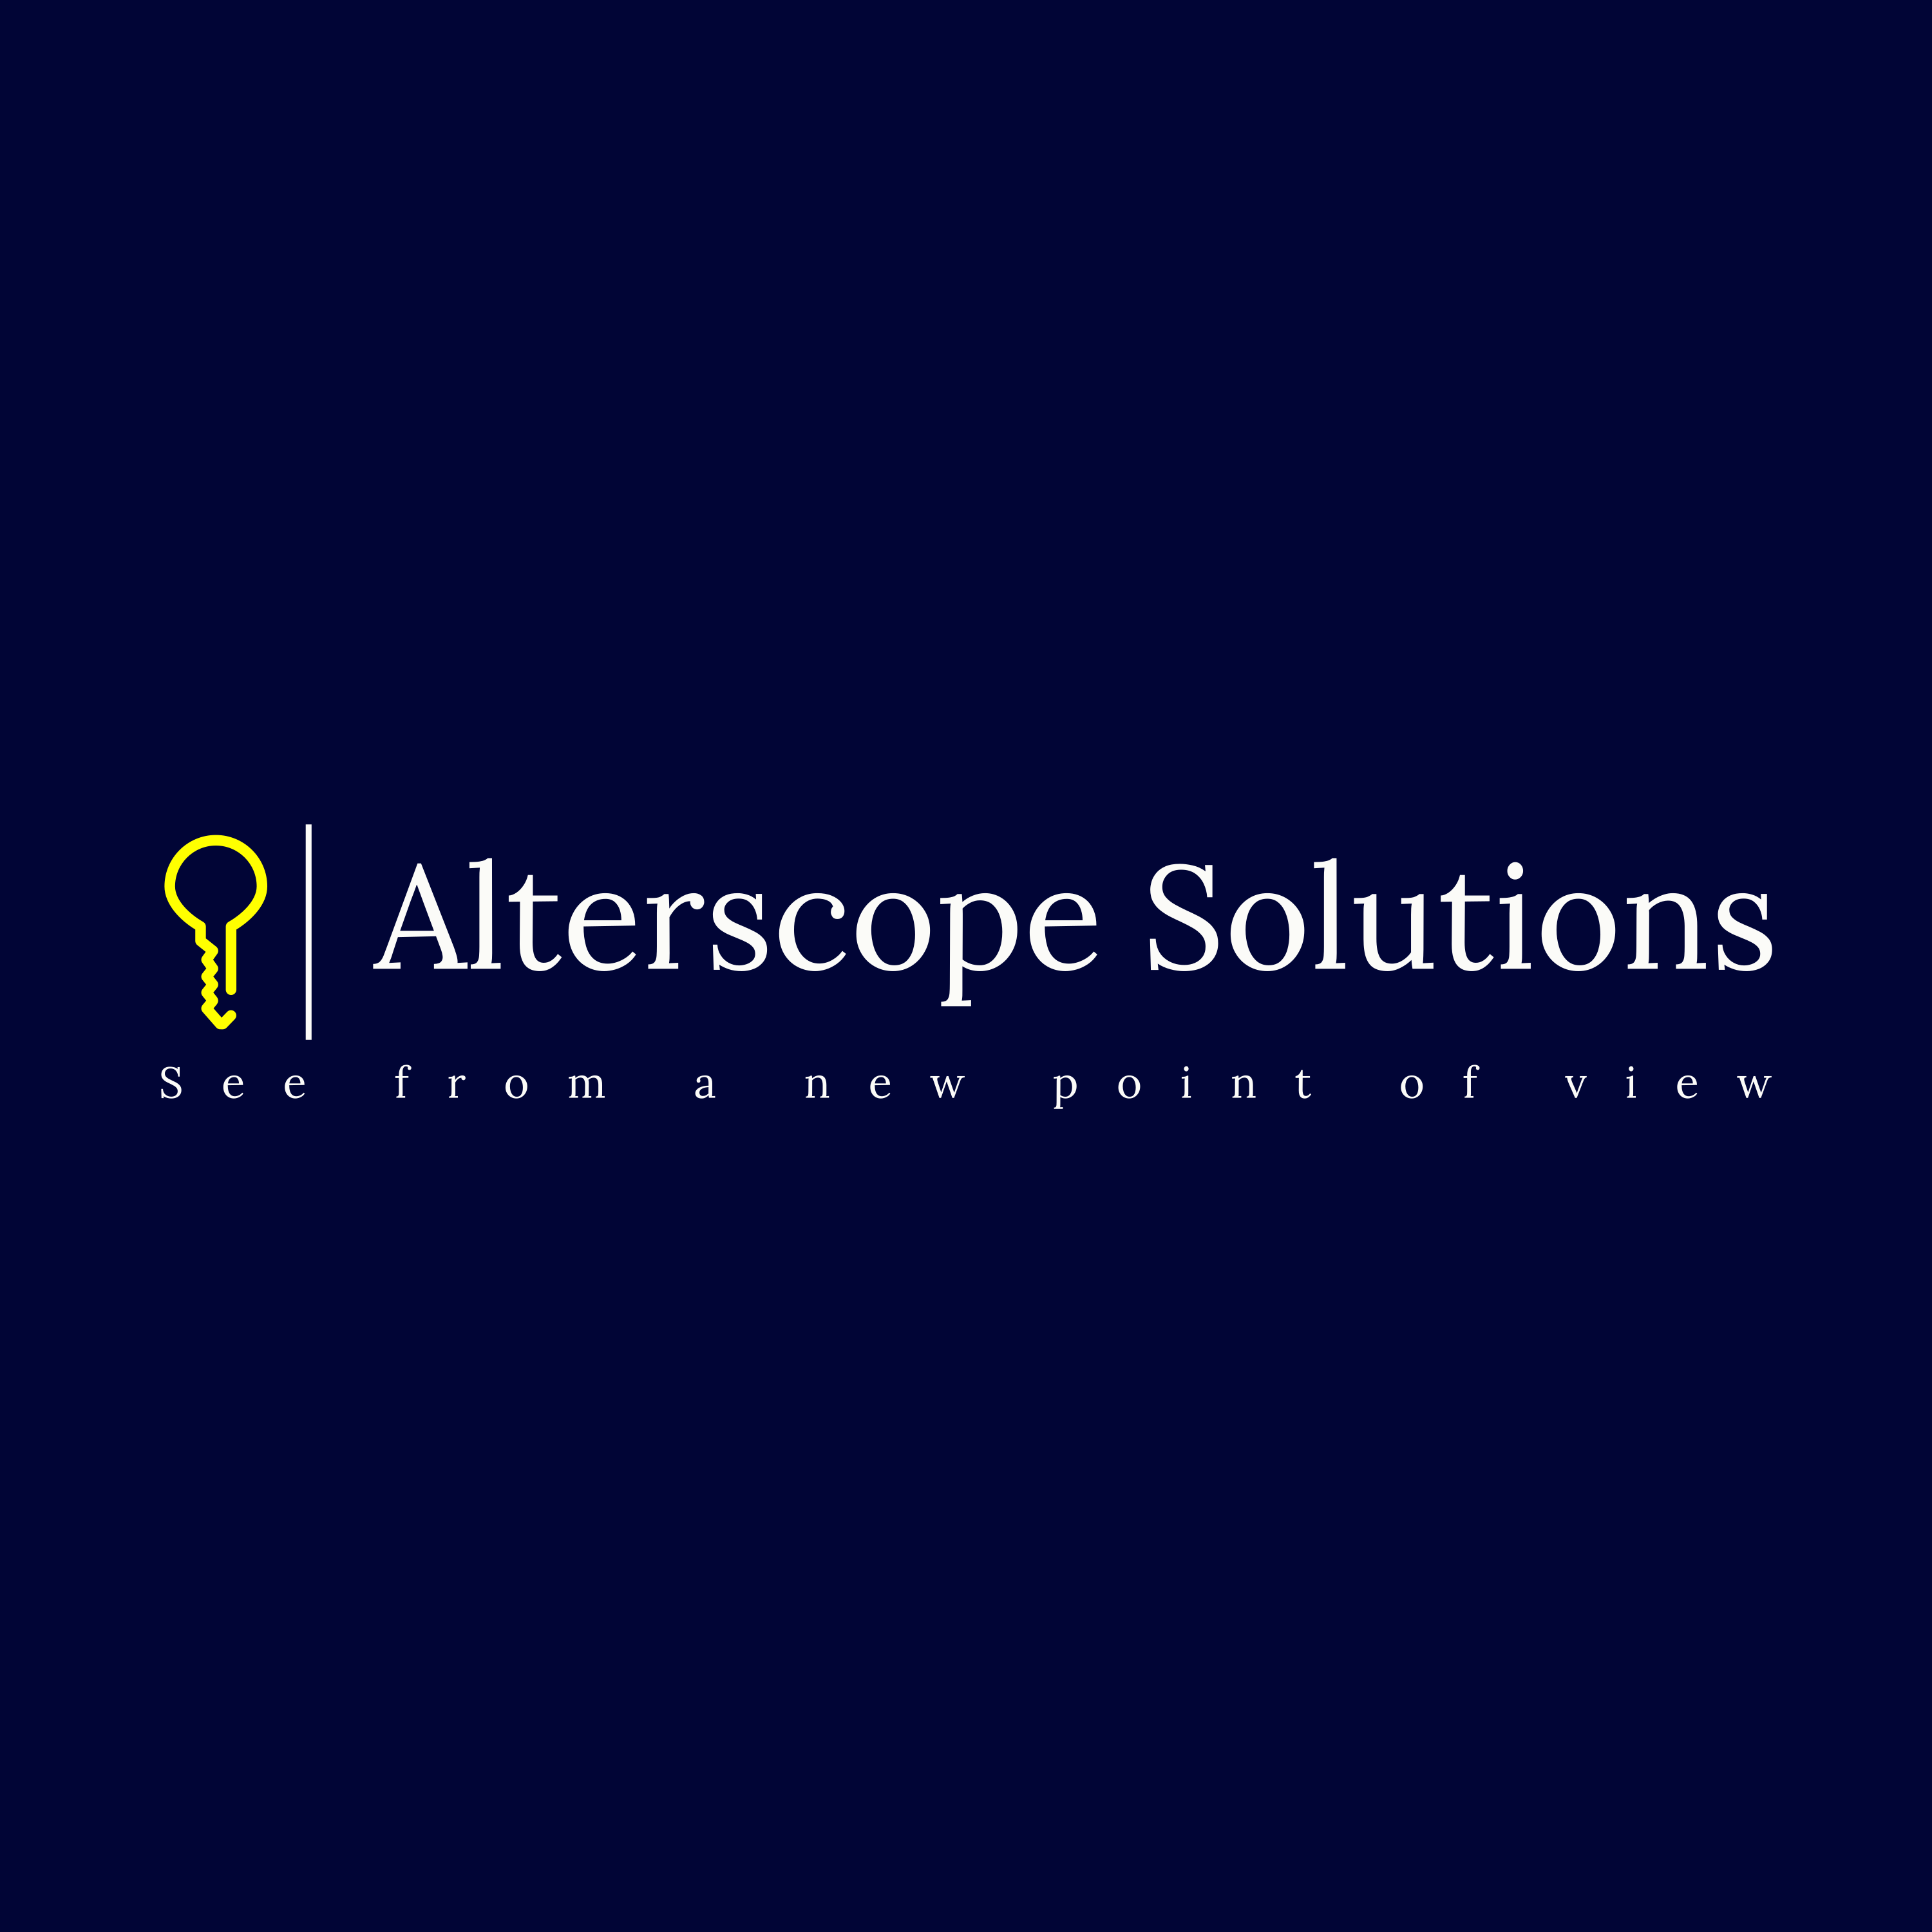 Alterscope Solutions